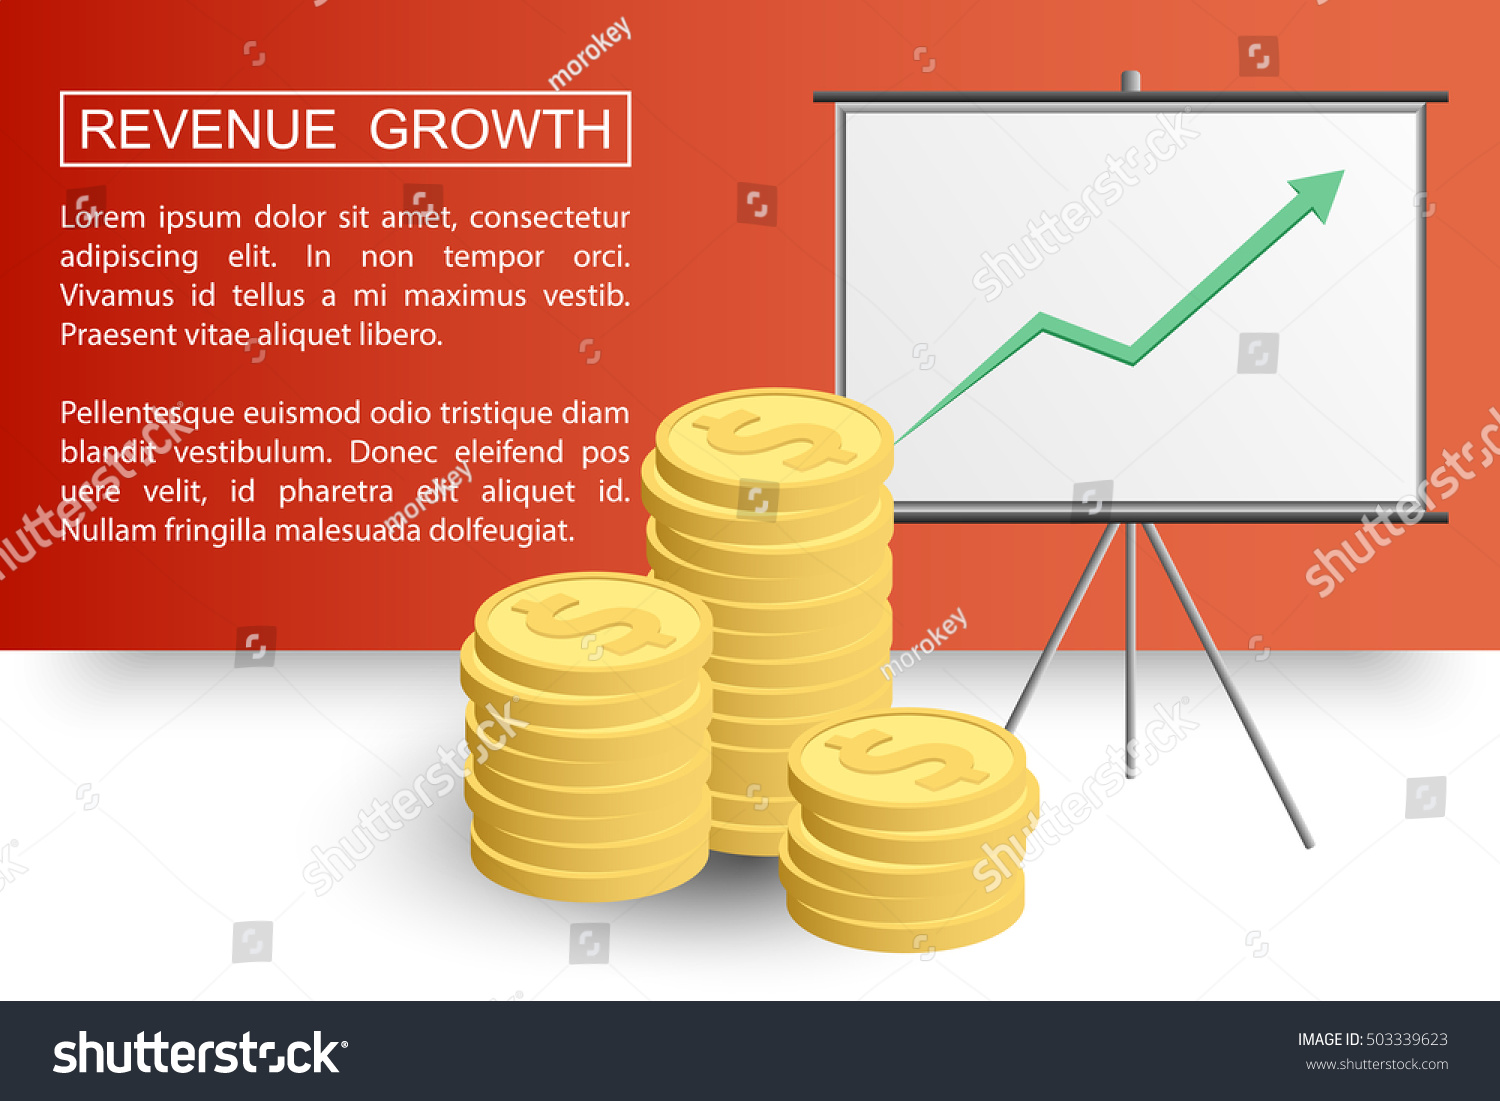 Med calc growth chart images free any chart examples medcalc growth charts gallery free any chart examples medcalc growth charts choice image free any chart nvjuhfo Choice Image